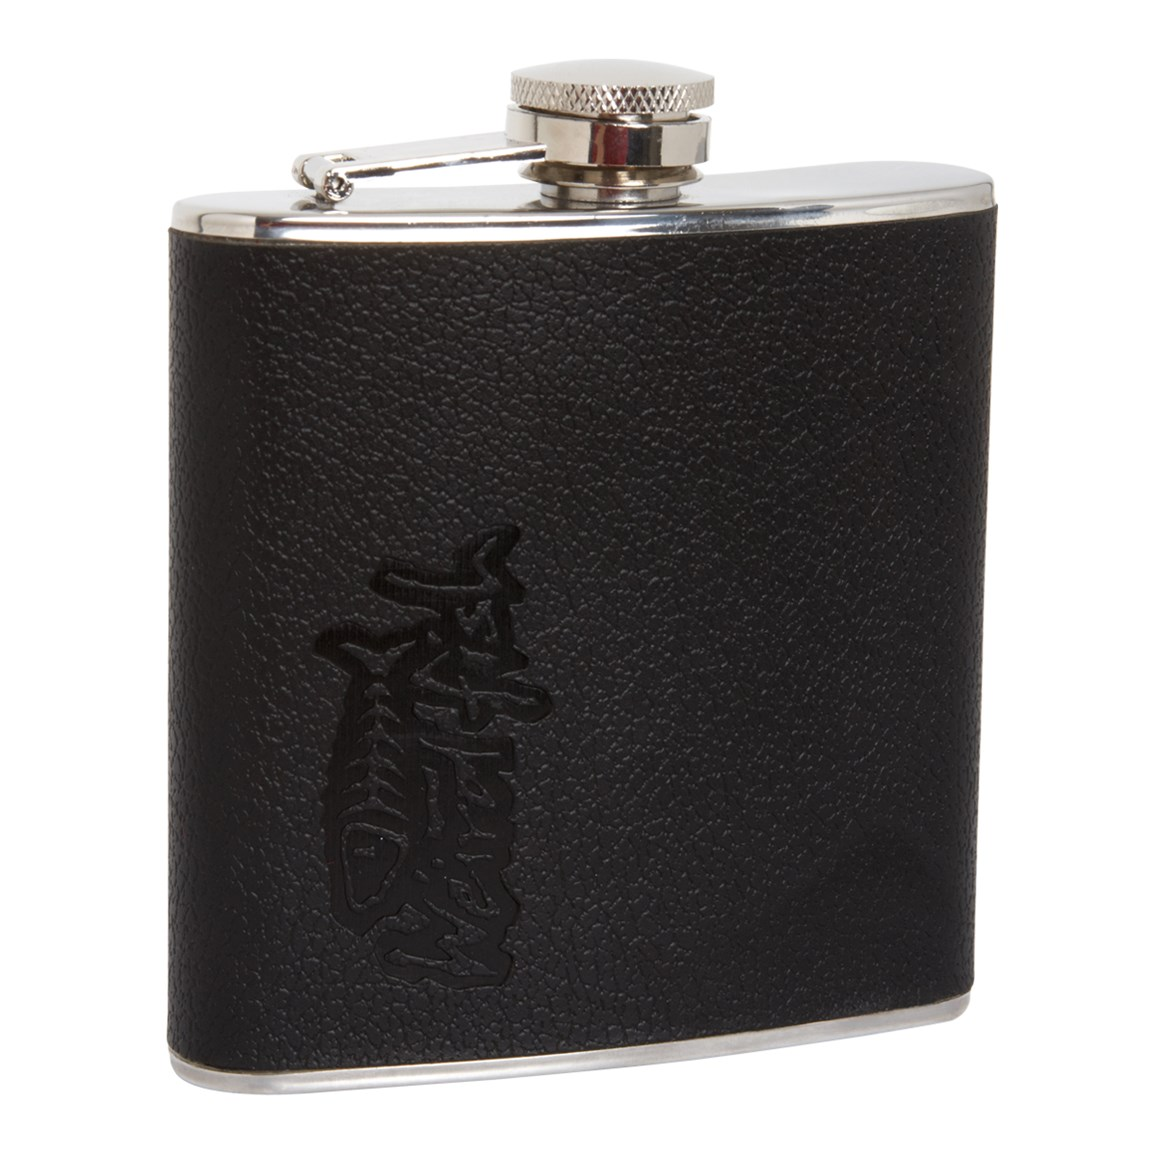 Image of Weird Fish Teton Leather Covered Hipflask Black Size ONE